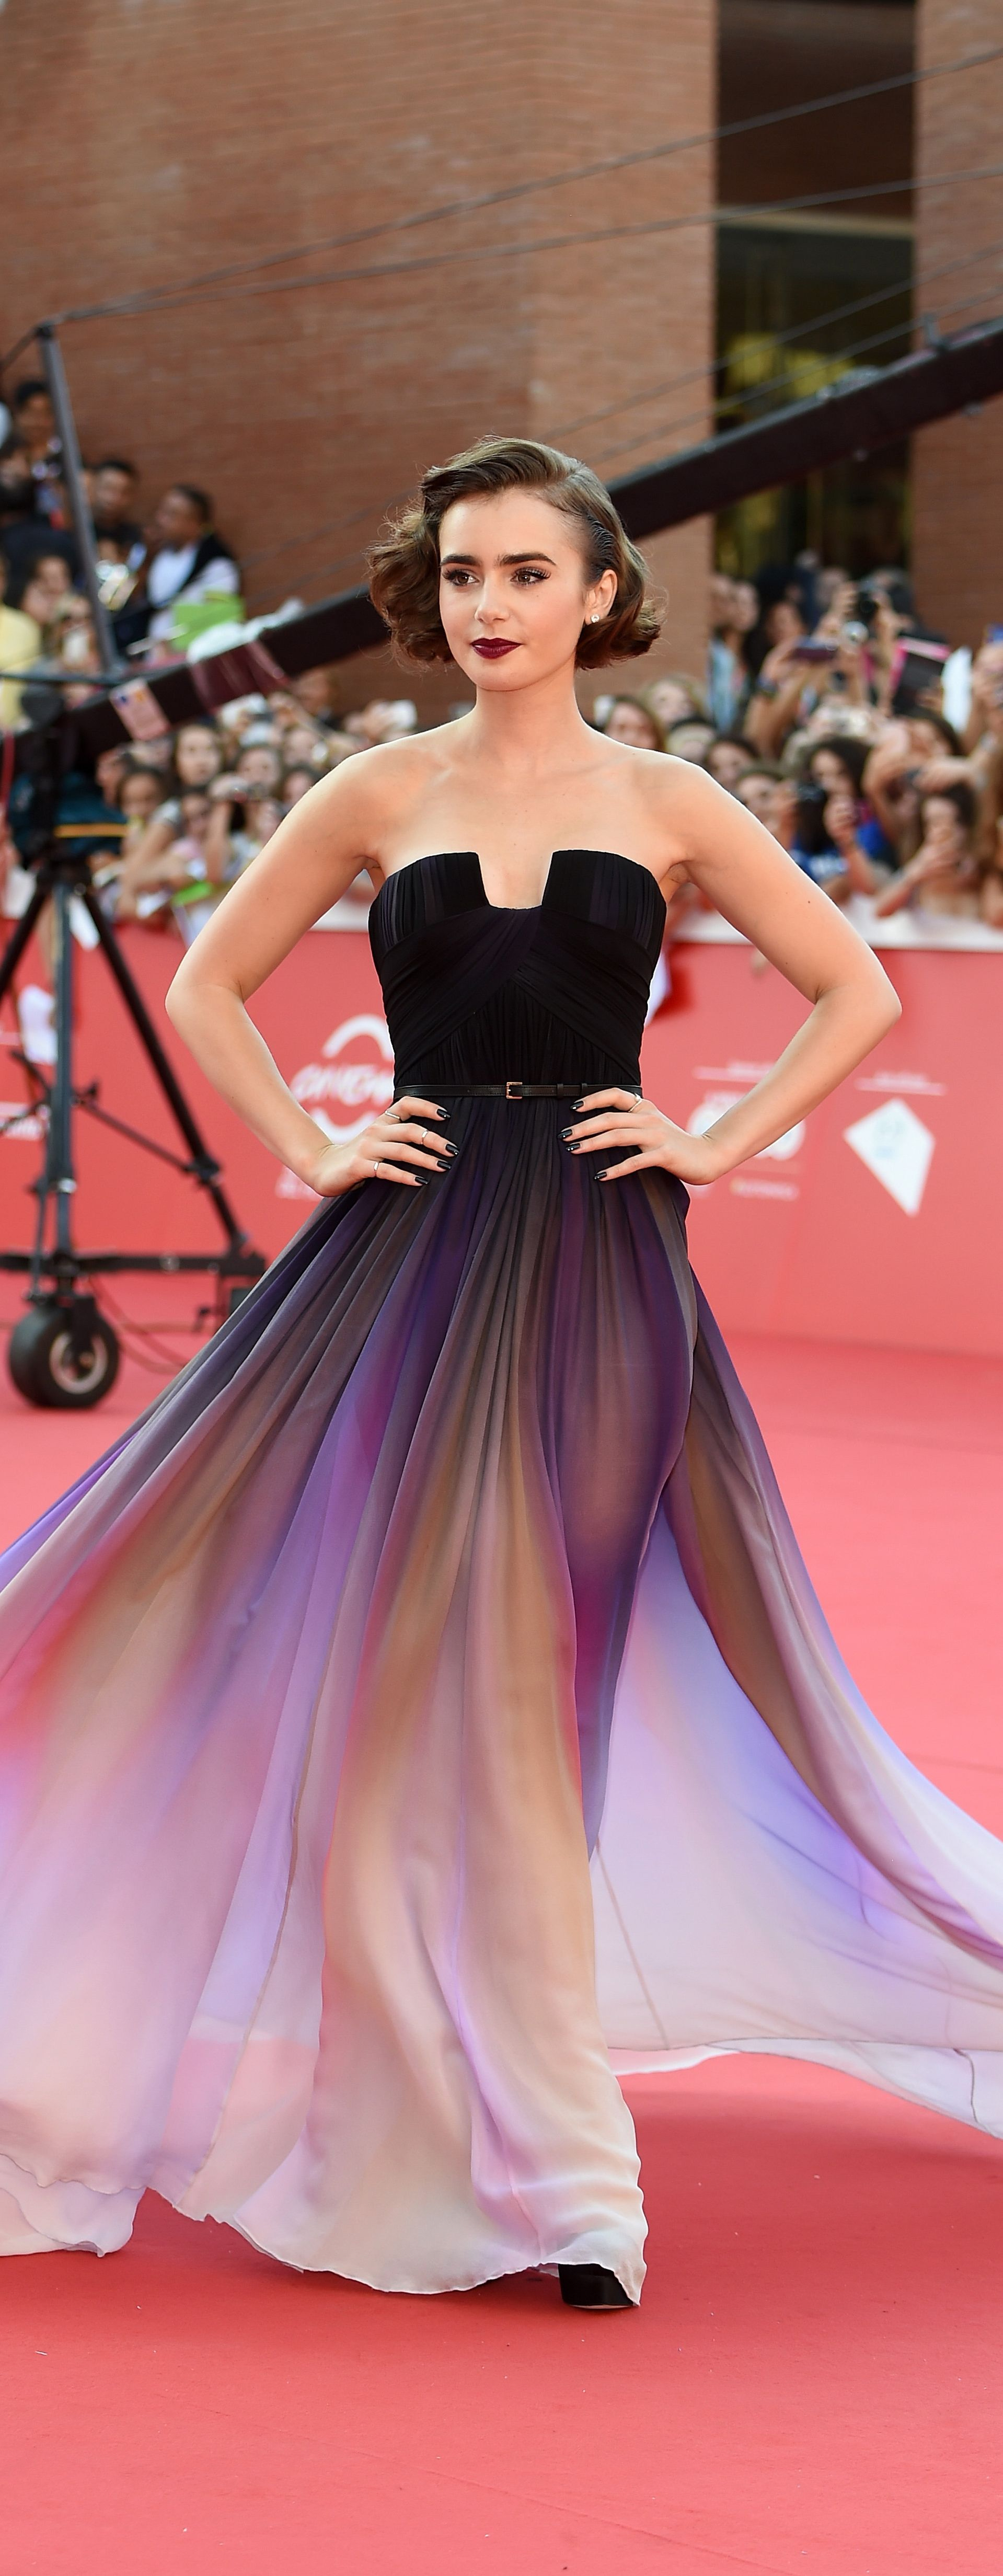 Abendkleid Roter Teppich Lily Collins 39s Ombré Elie Saab Dress Just Won The Weekend